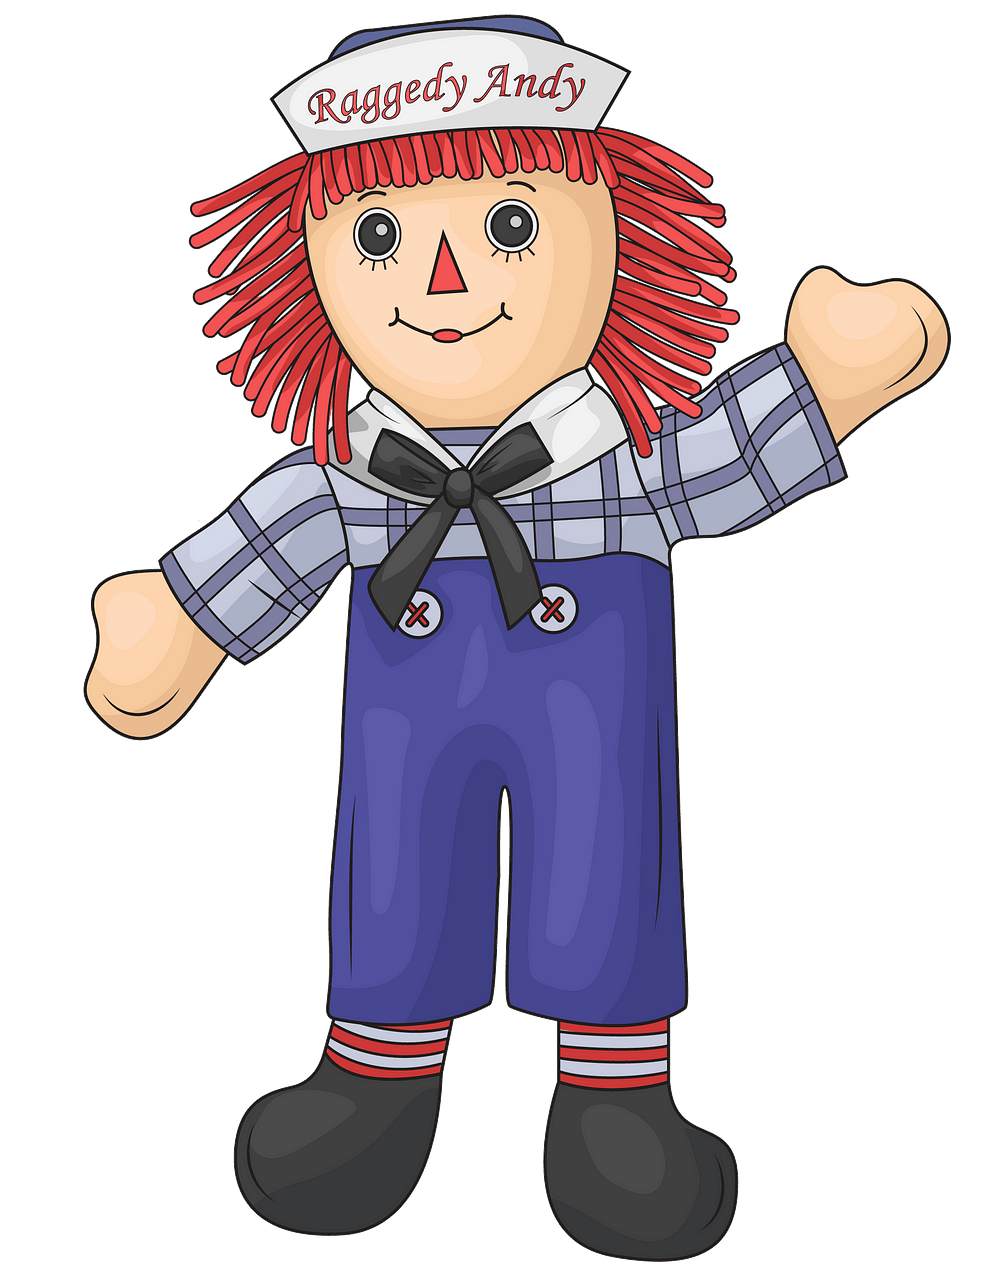 Raggedy Andy clipart. Free download..